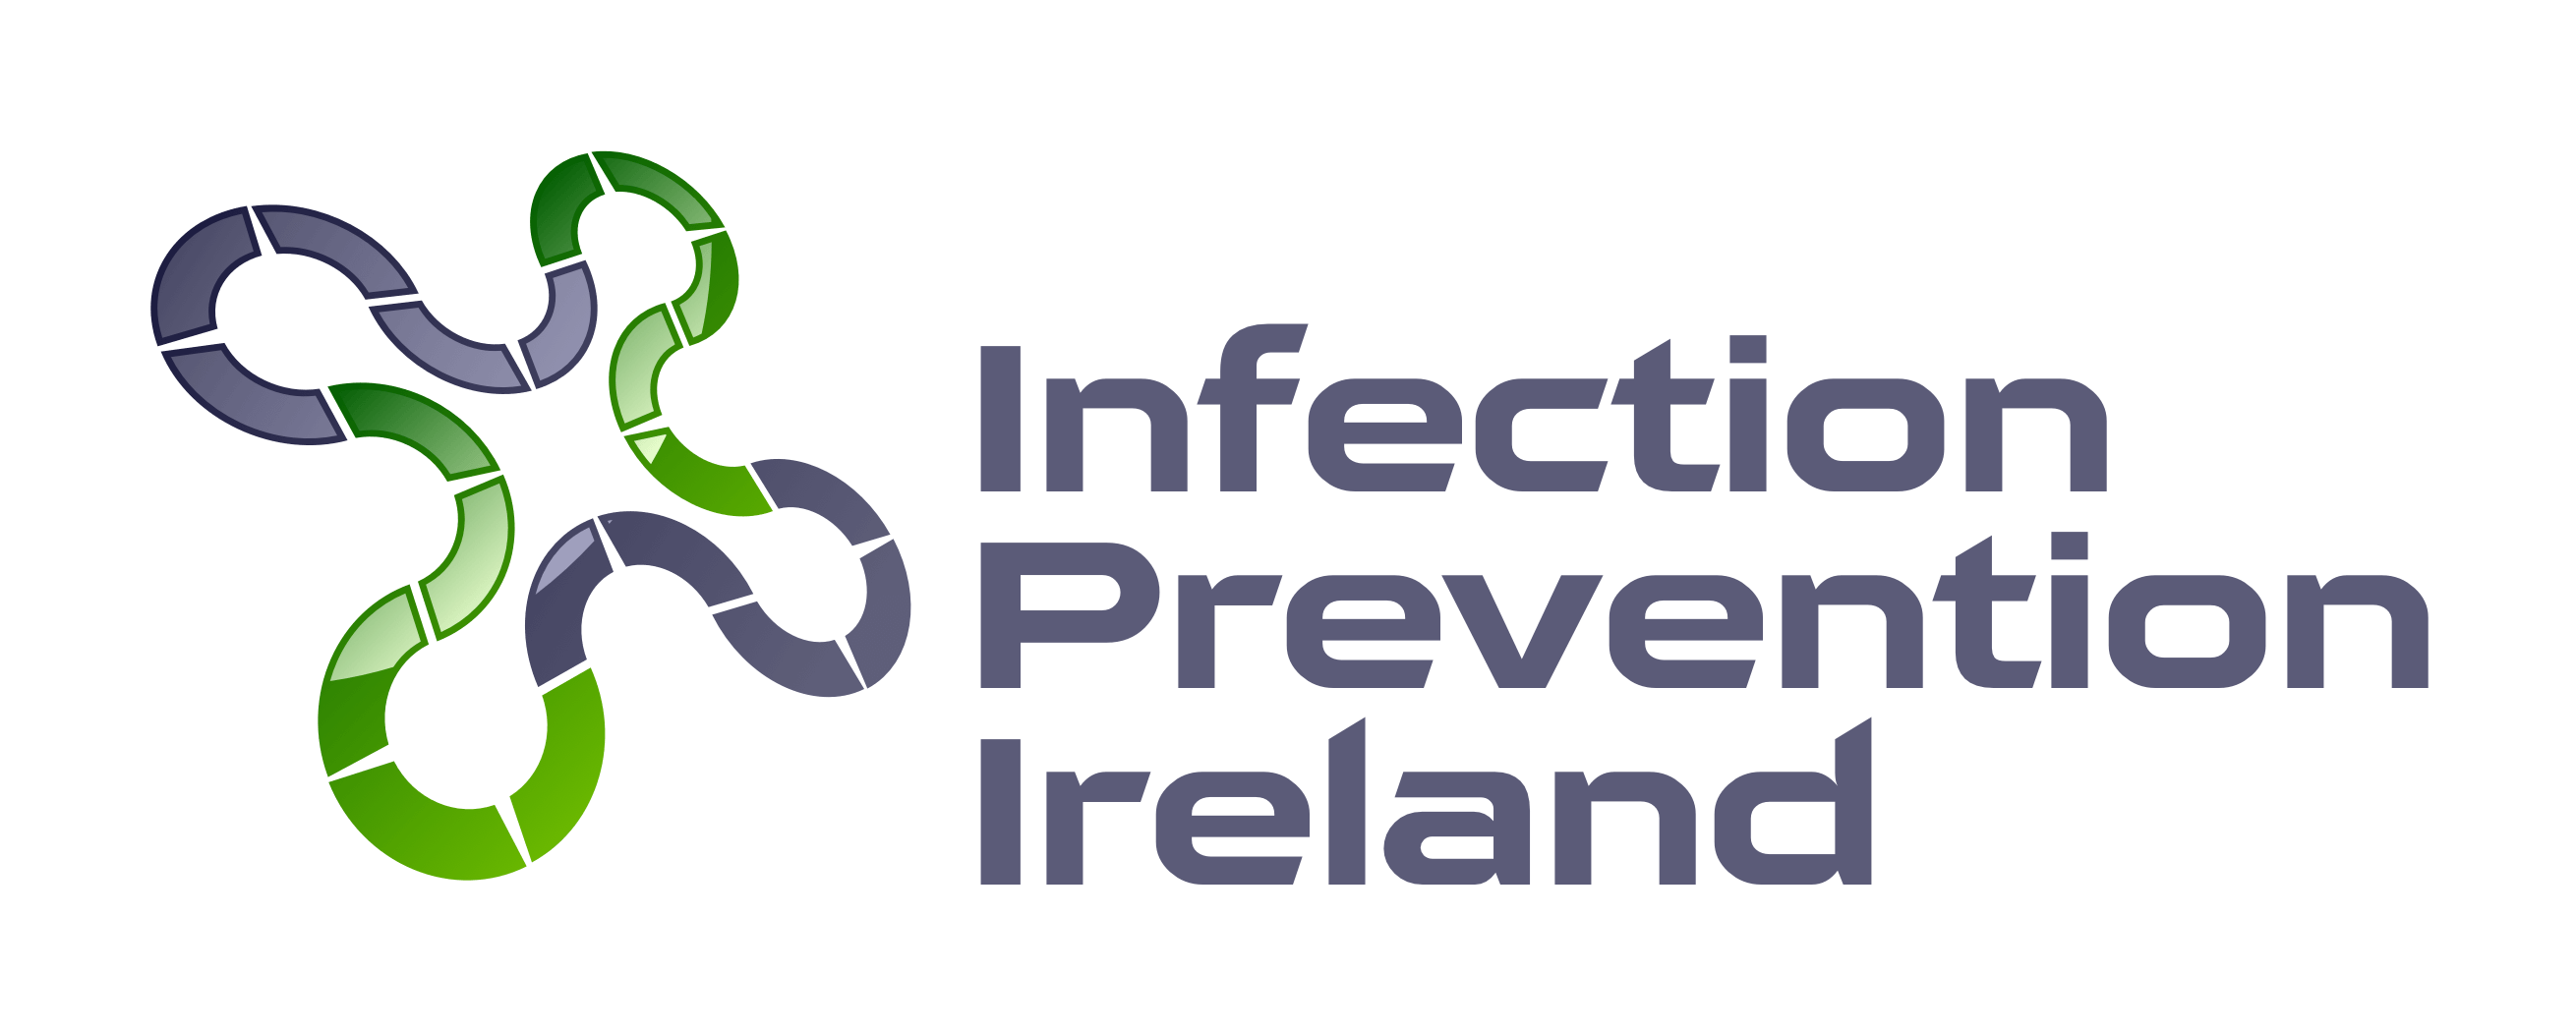 Infection Prevention Ireland - Electrostatic Sprayers